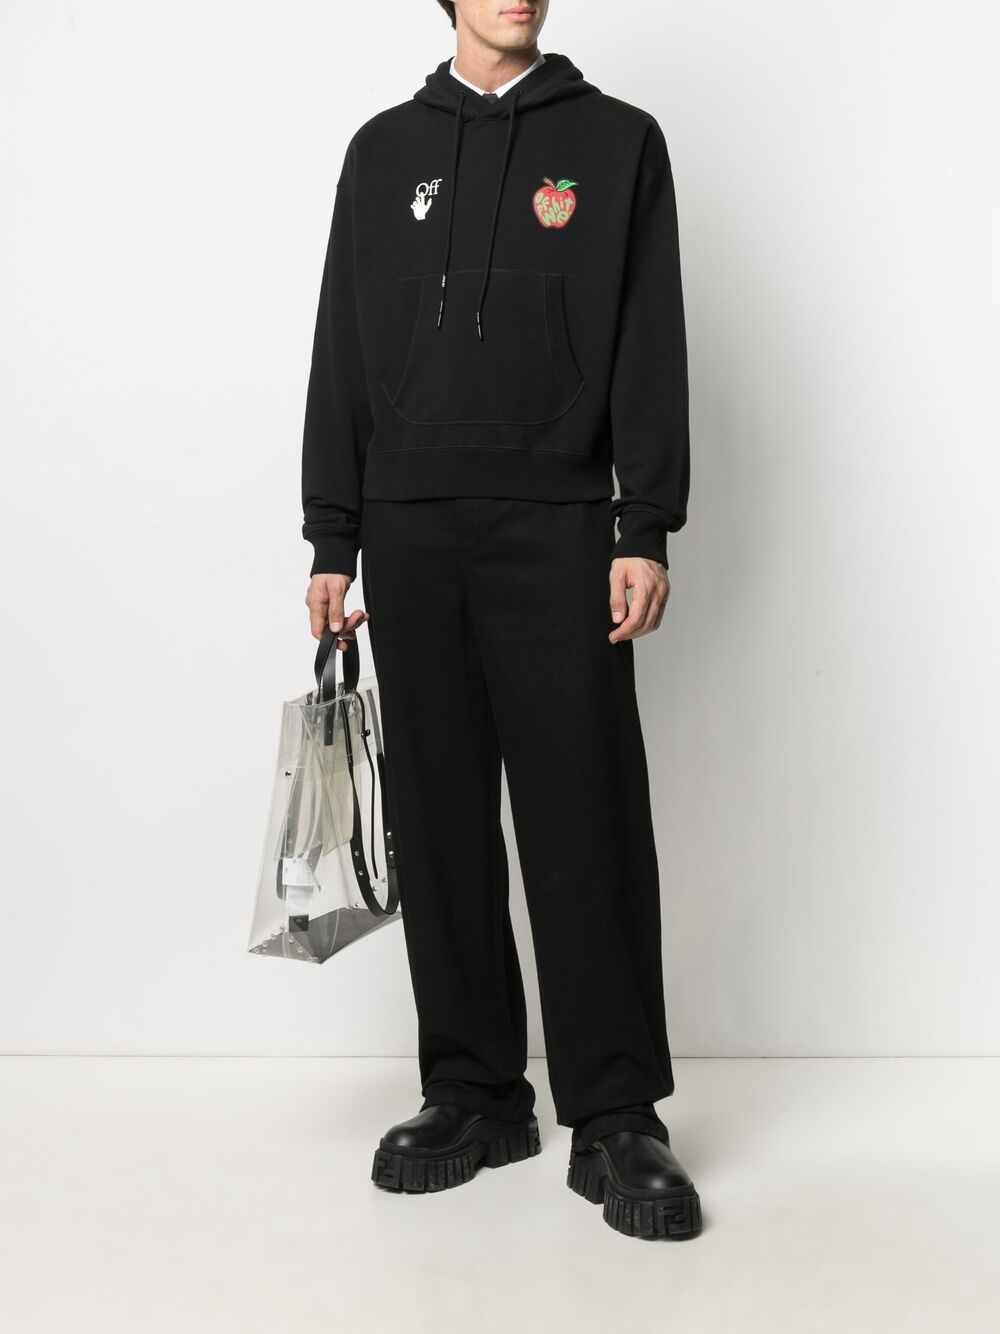 OFF-WHITE Apple Flatlock Hoodie Black